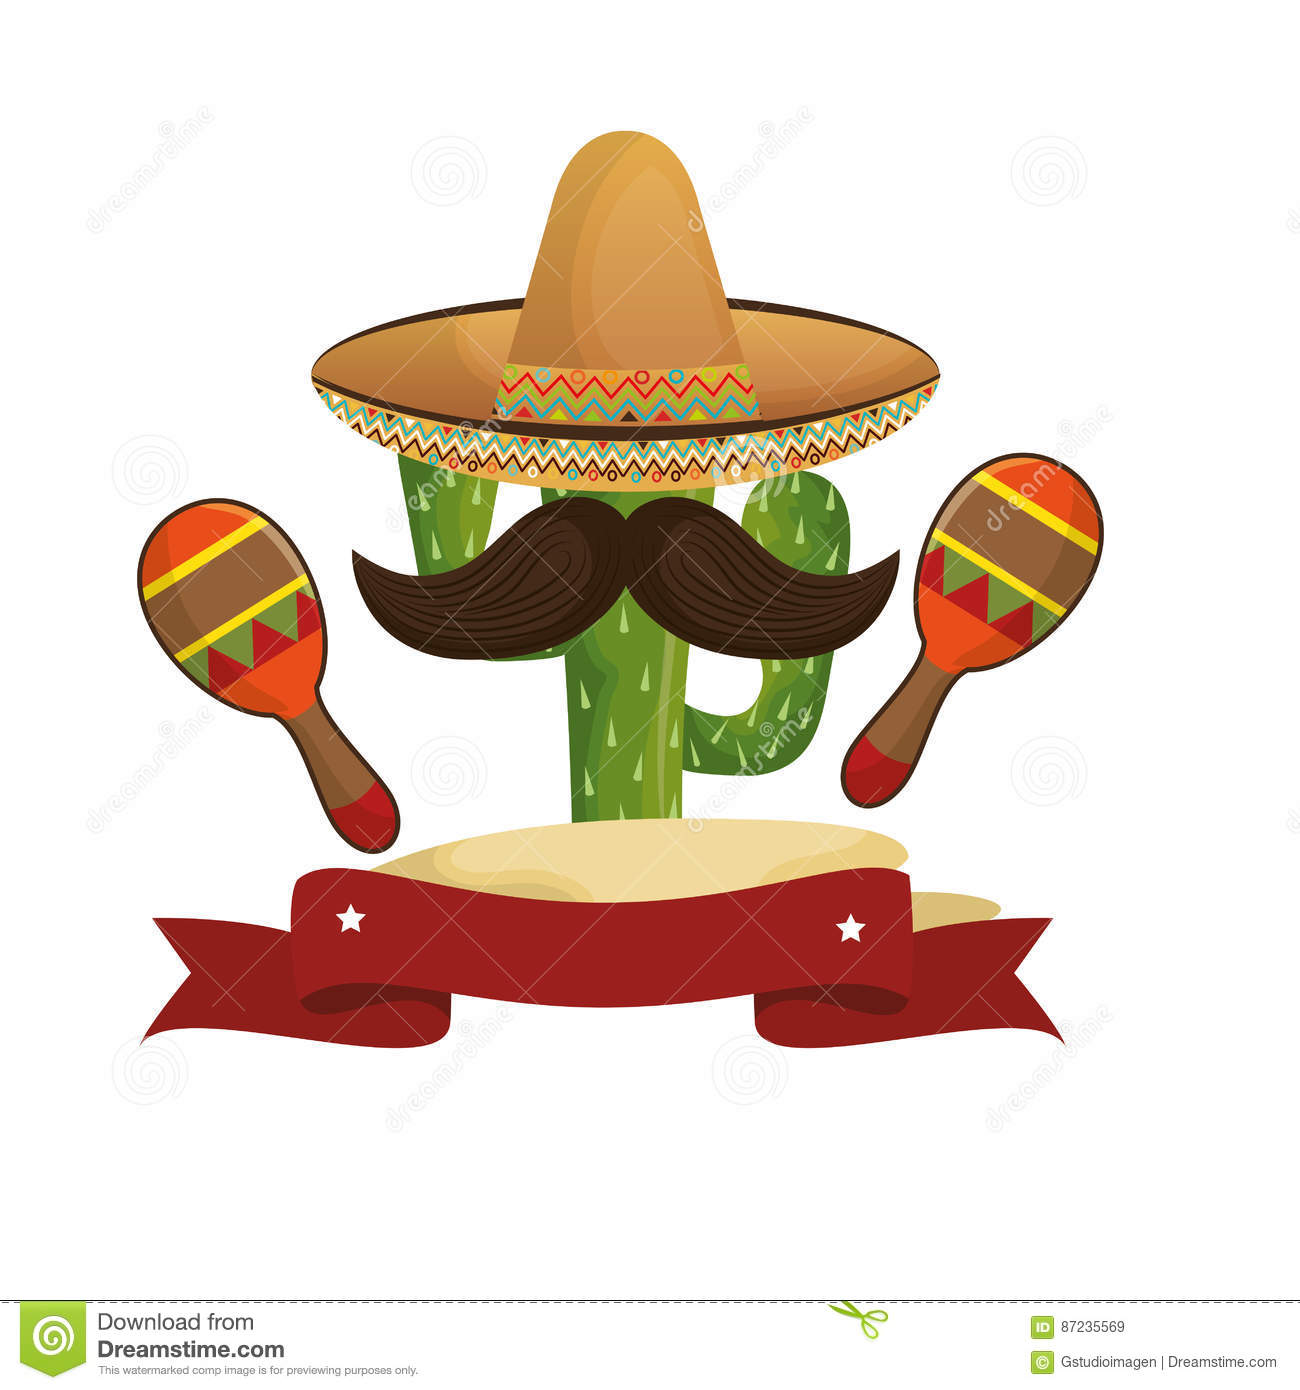 Animated sketch cactus with mexican hat and moustache with maraca